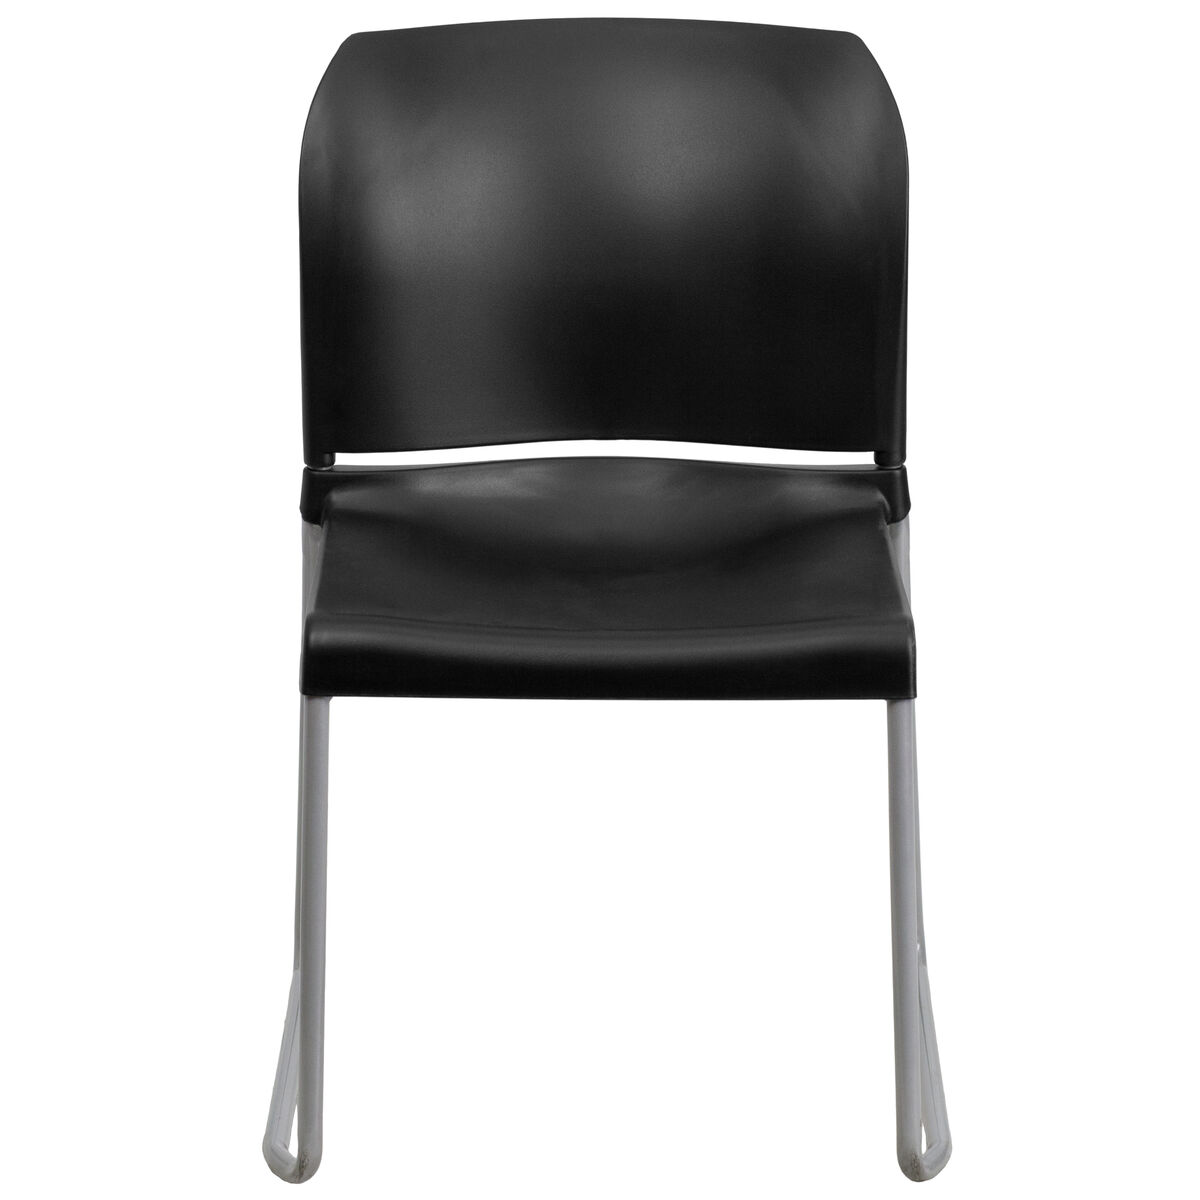 Our Hercules Series 880 Lb Capacity Black Full Back Contoured Stack Chair With Sled Base